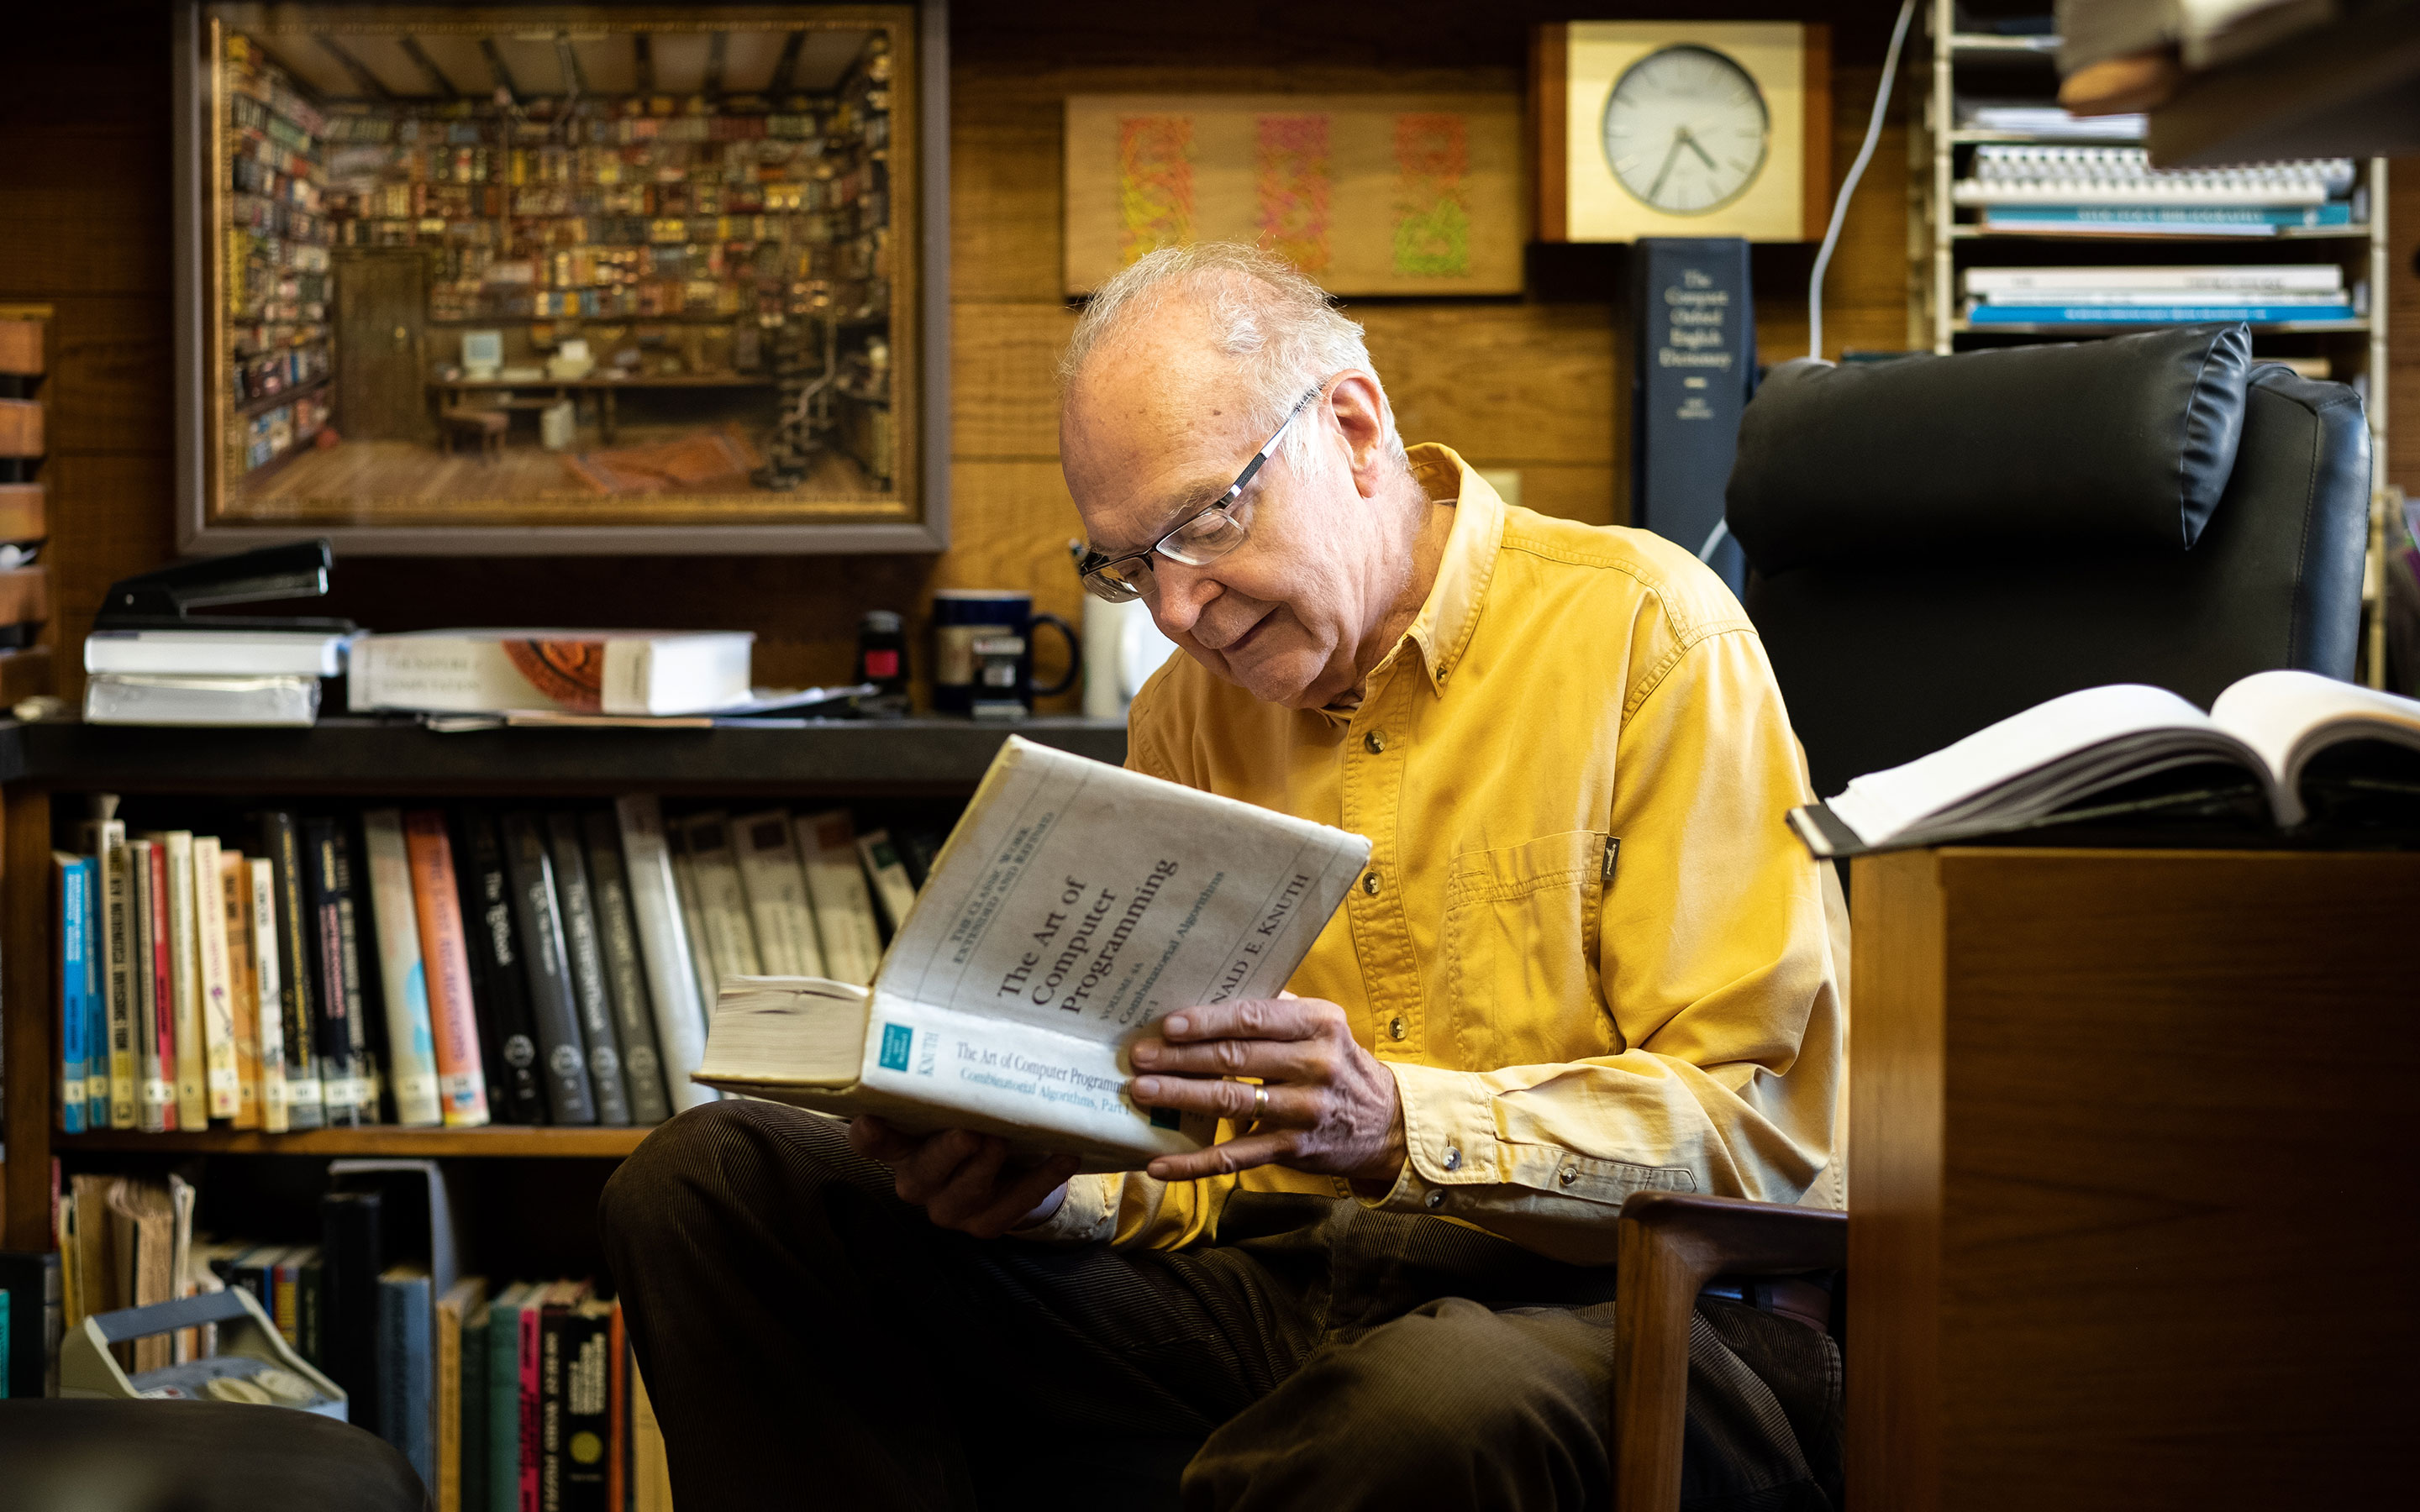 Photo of Donald Knuth in a yellow shirt sits and reads from a volume of The Art of Computer Programming